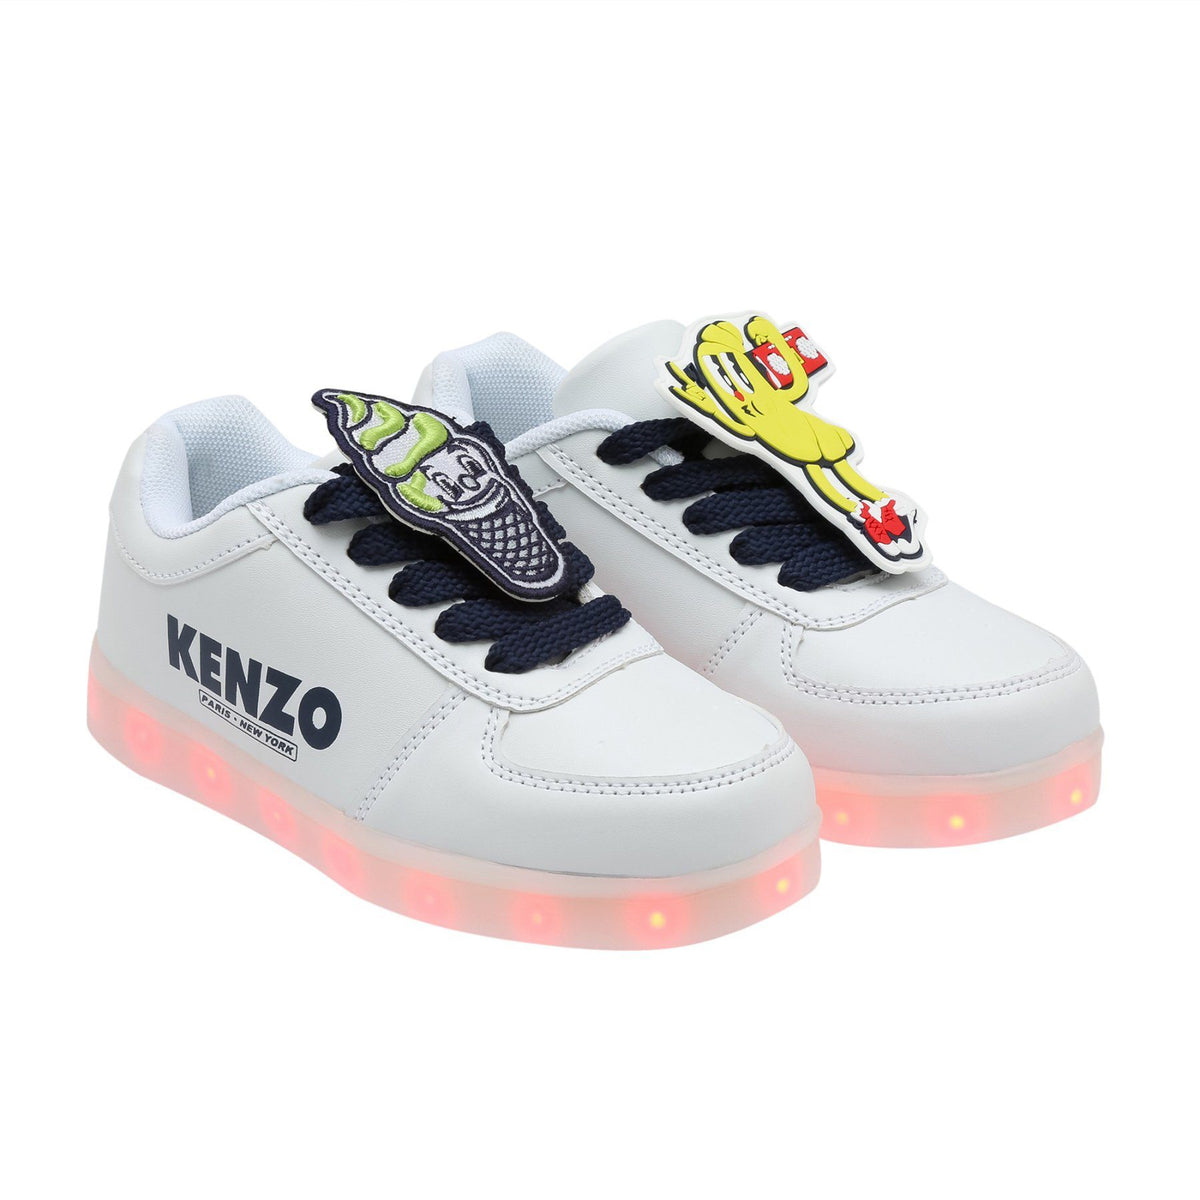 Kenzo Light-up LED Doopy Shoes for Boys, White